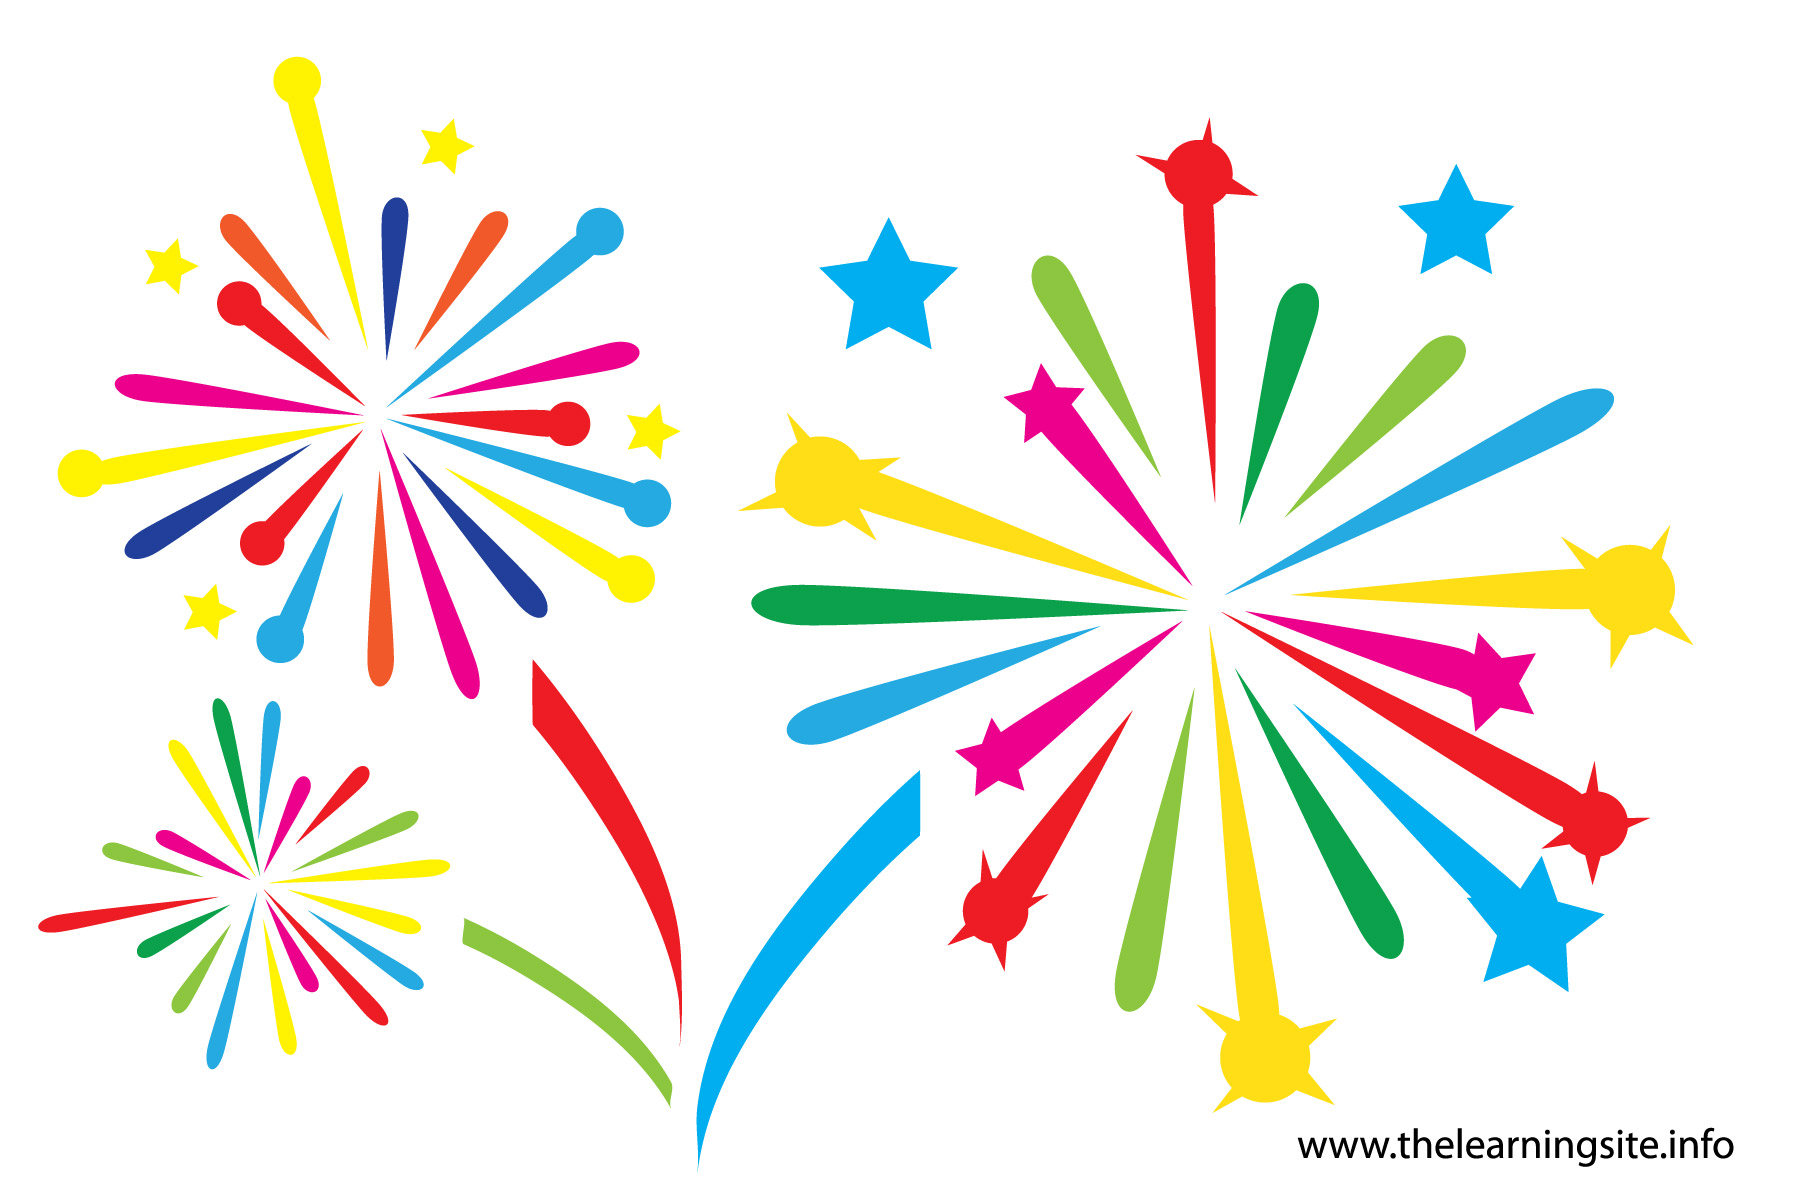 Free clipart firecracker image transparent library Free Animated Fireworks Cliparts, Download Free Clip Art, Free Clip ... image transparent library